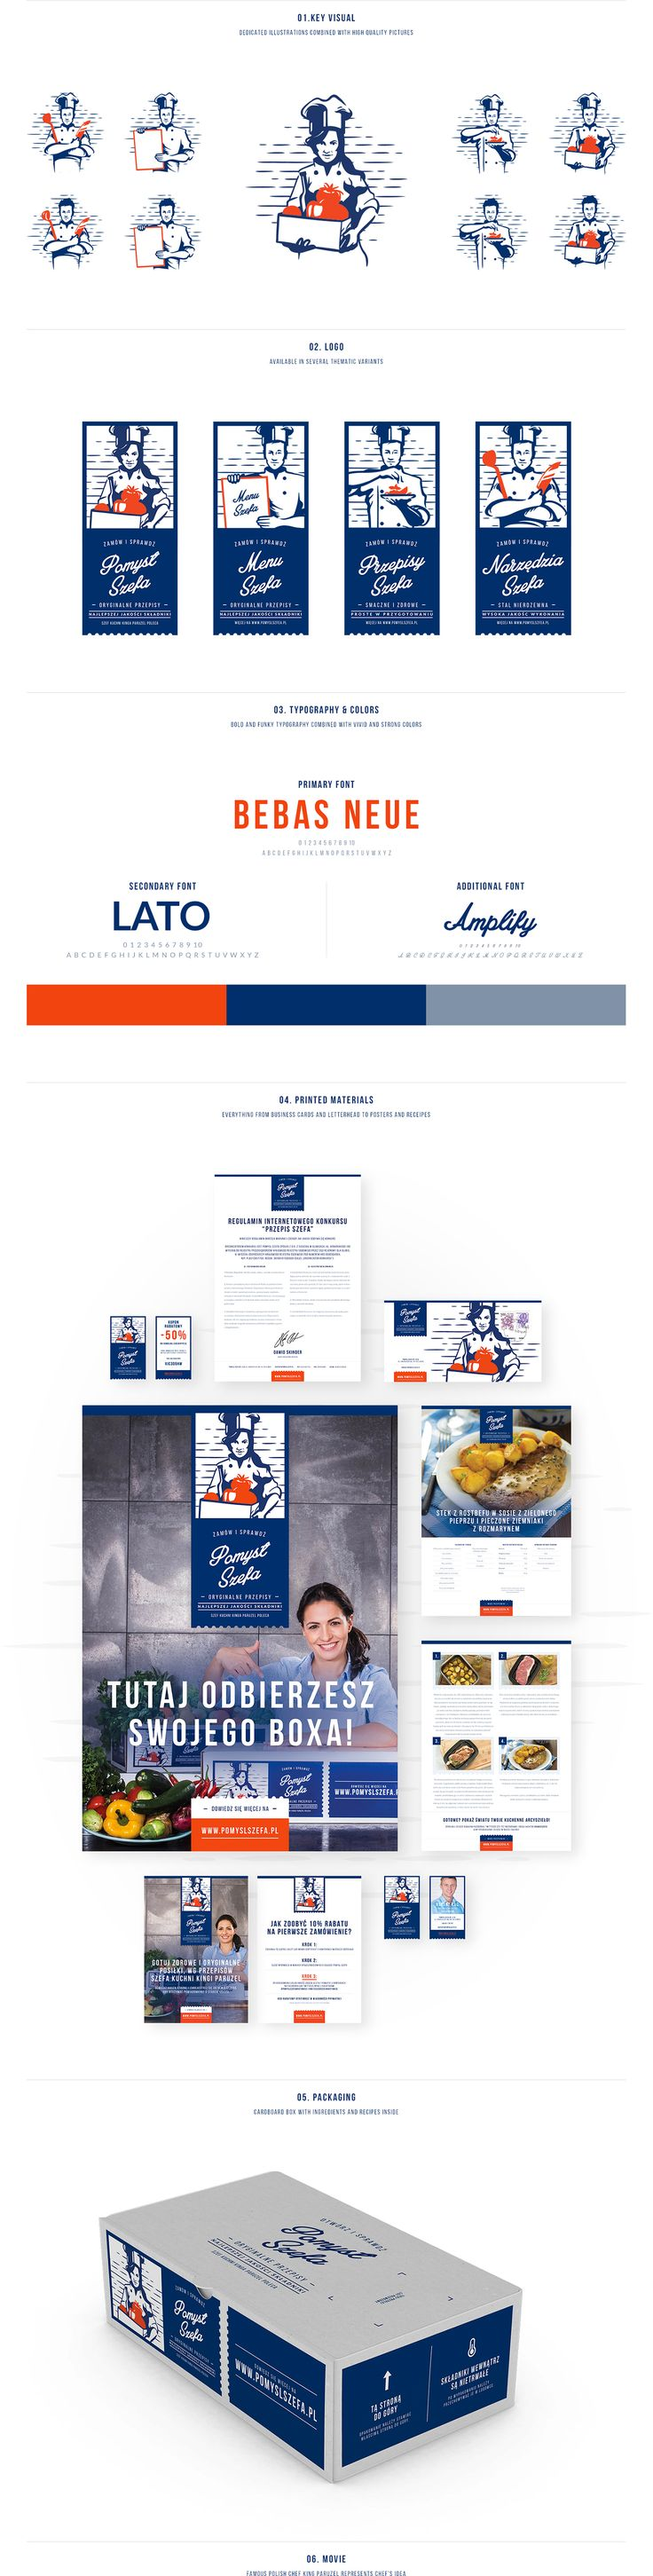 Chef's Idea - Visual identification on Behance